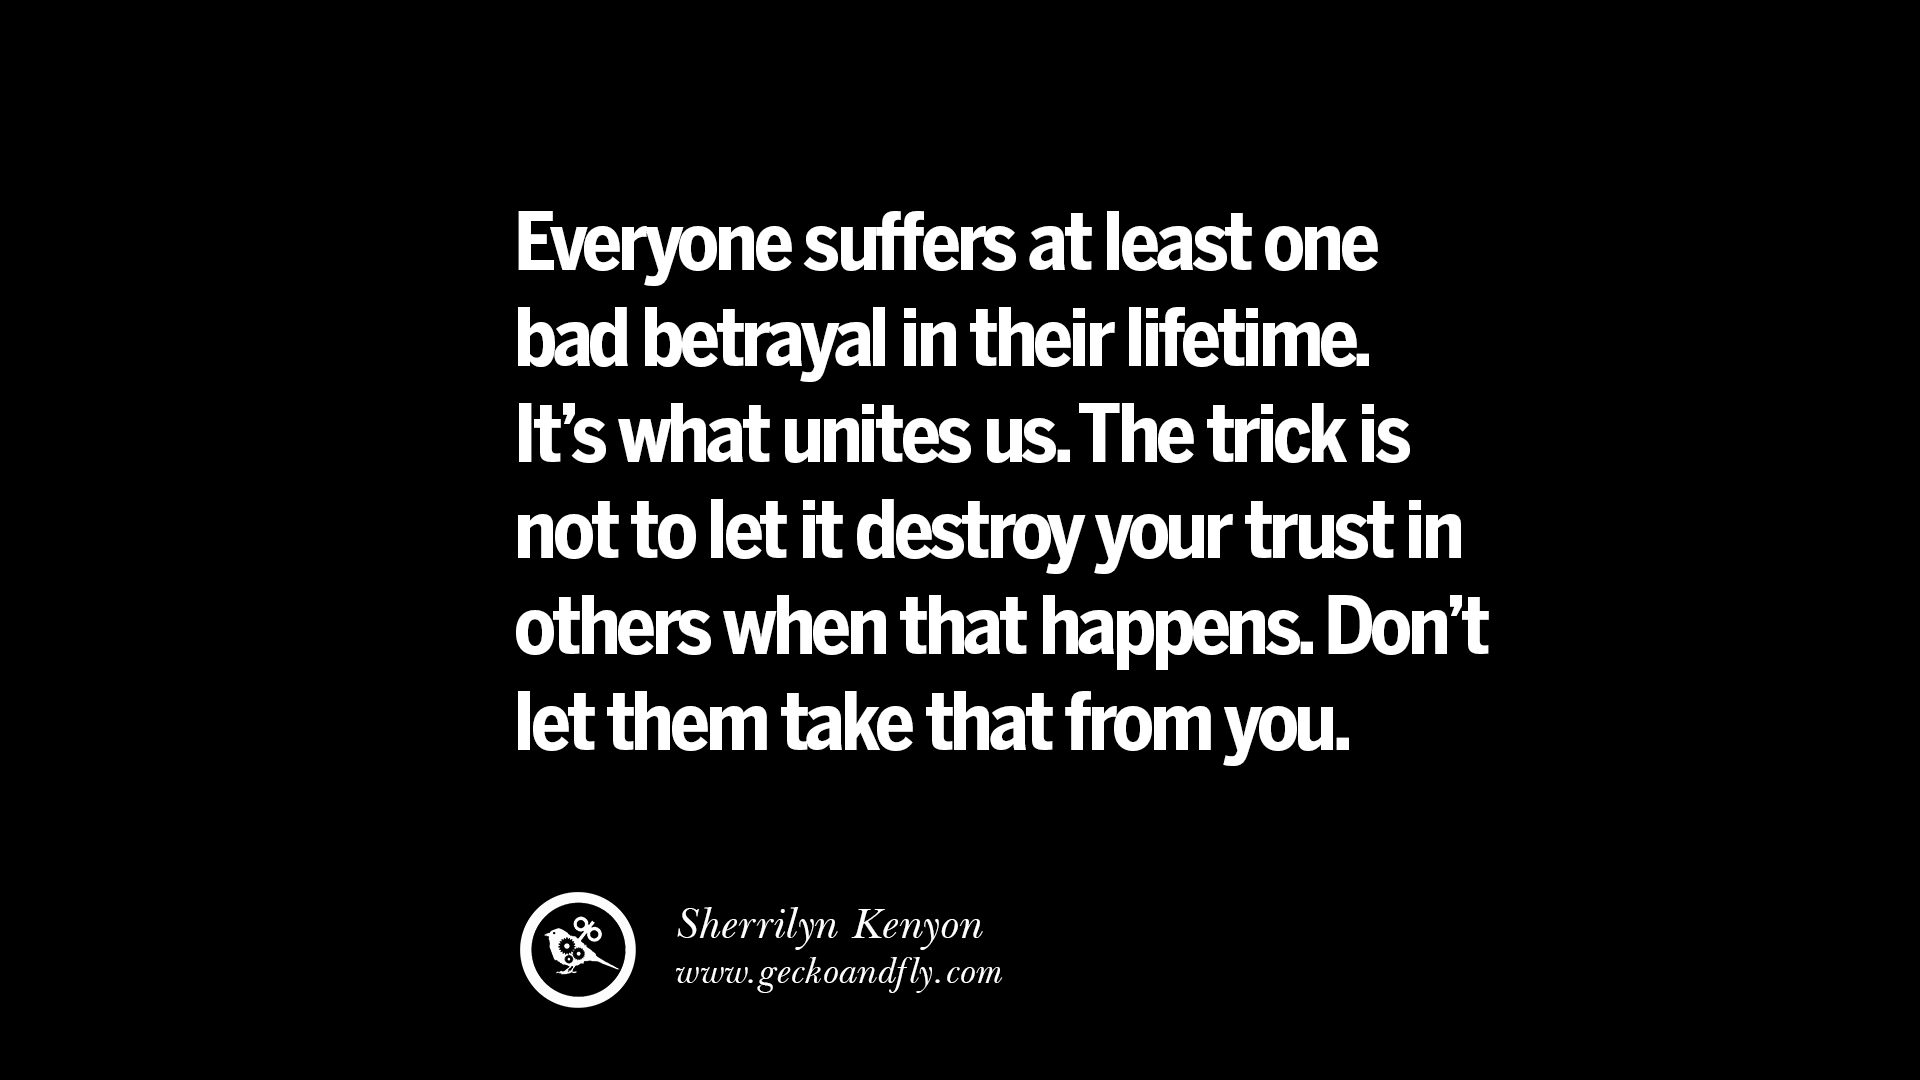 Family Betraying You: When Family Betrays You Quotes. QuotesGram